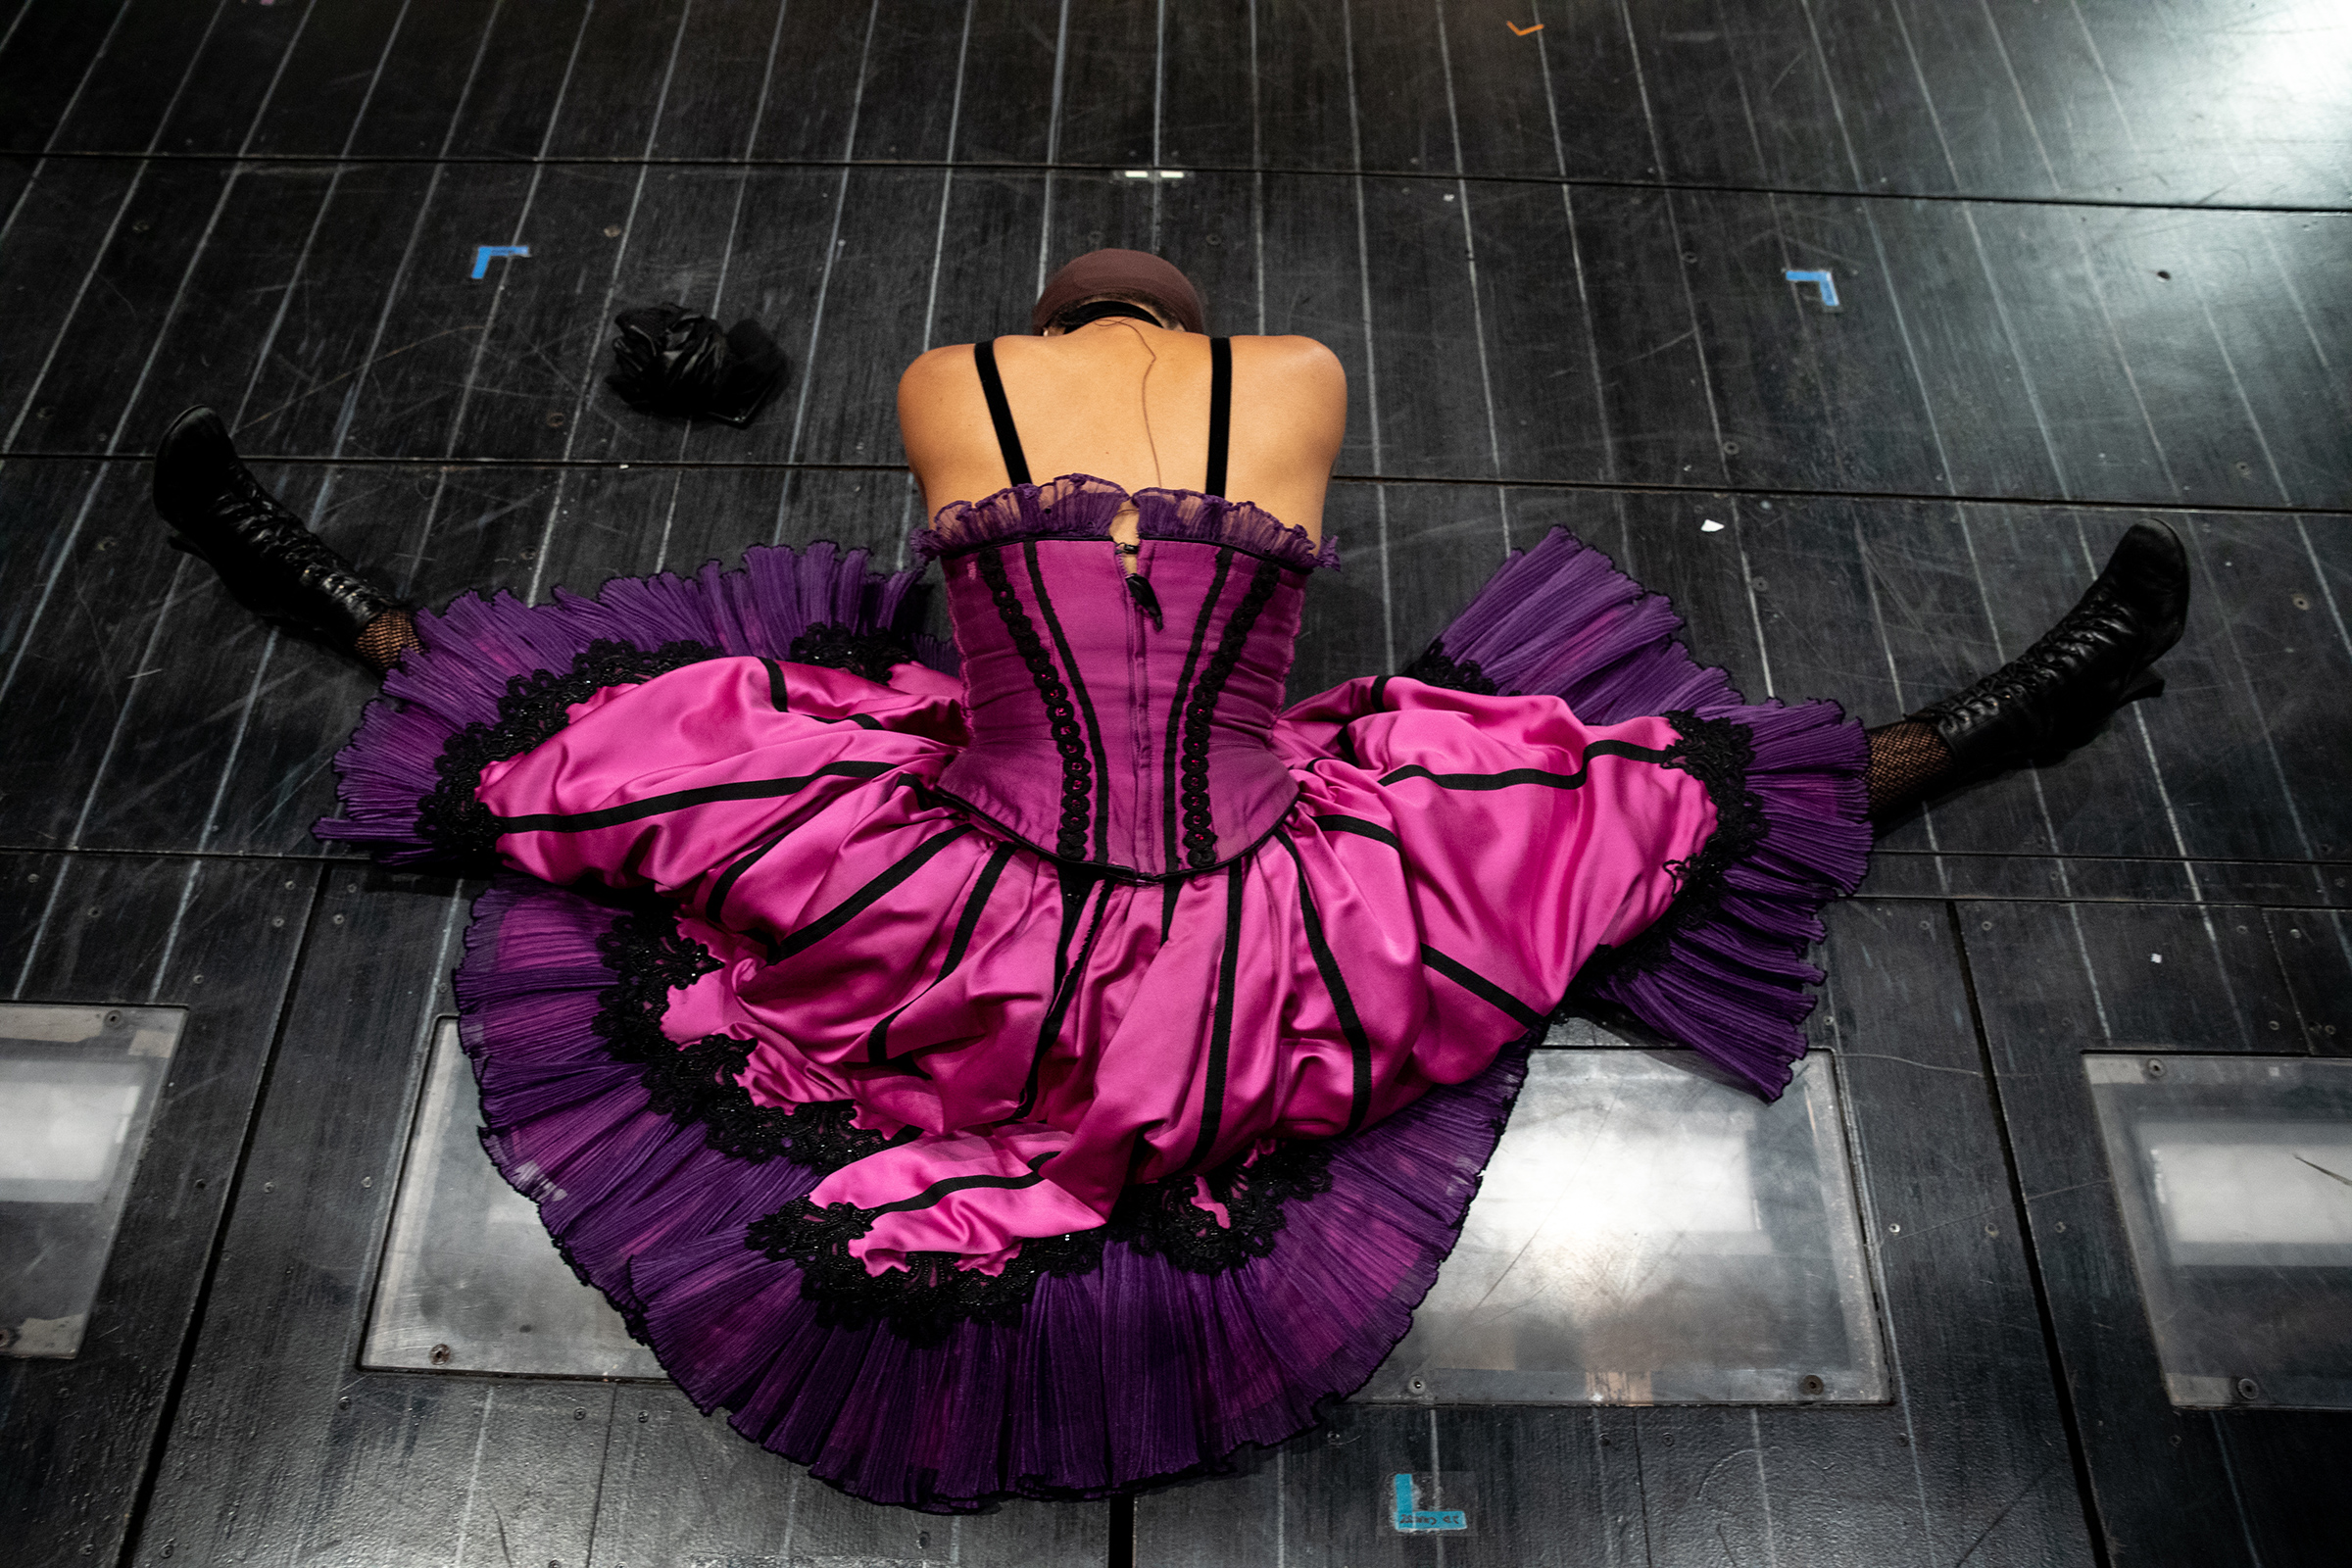 Ensemble member Bahiyah Hibah stretches on stage during rehearsal for Moulin Rouge! on Sept. 21, 2021 in New York, N.Y.